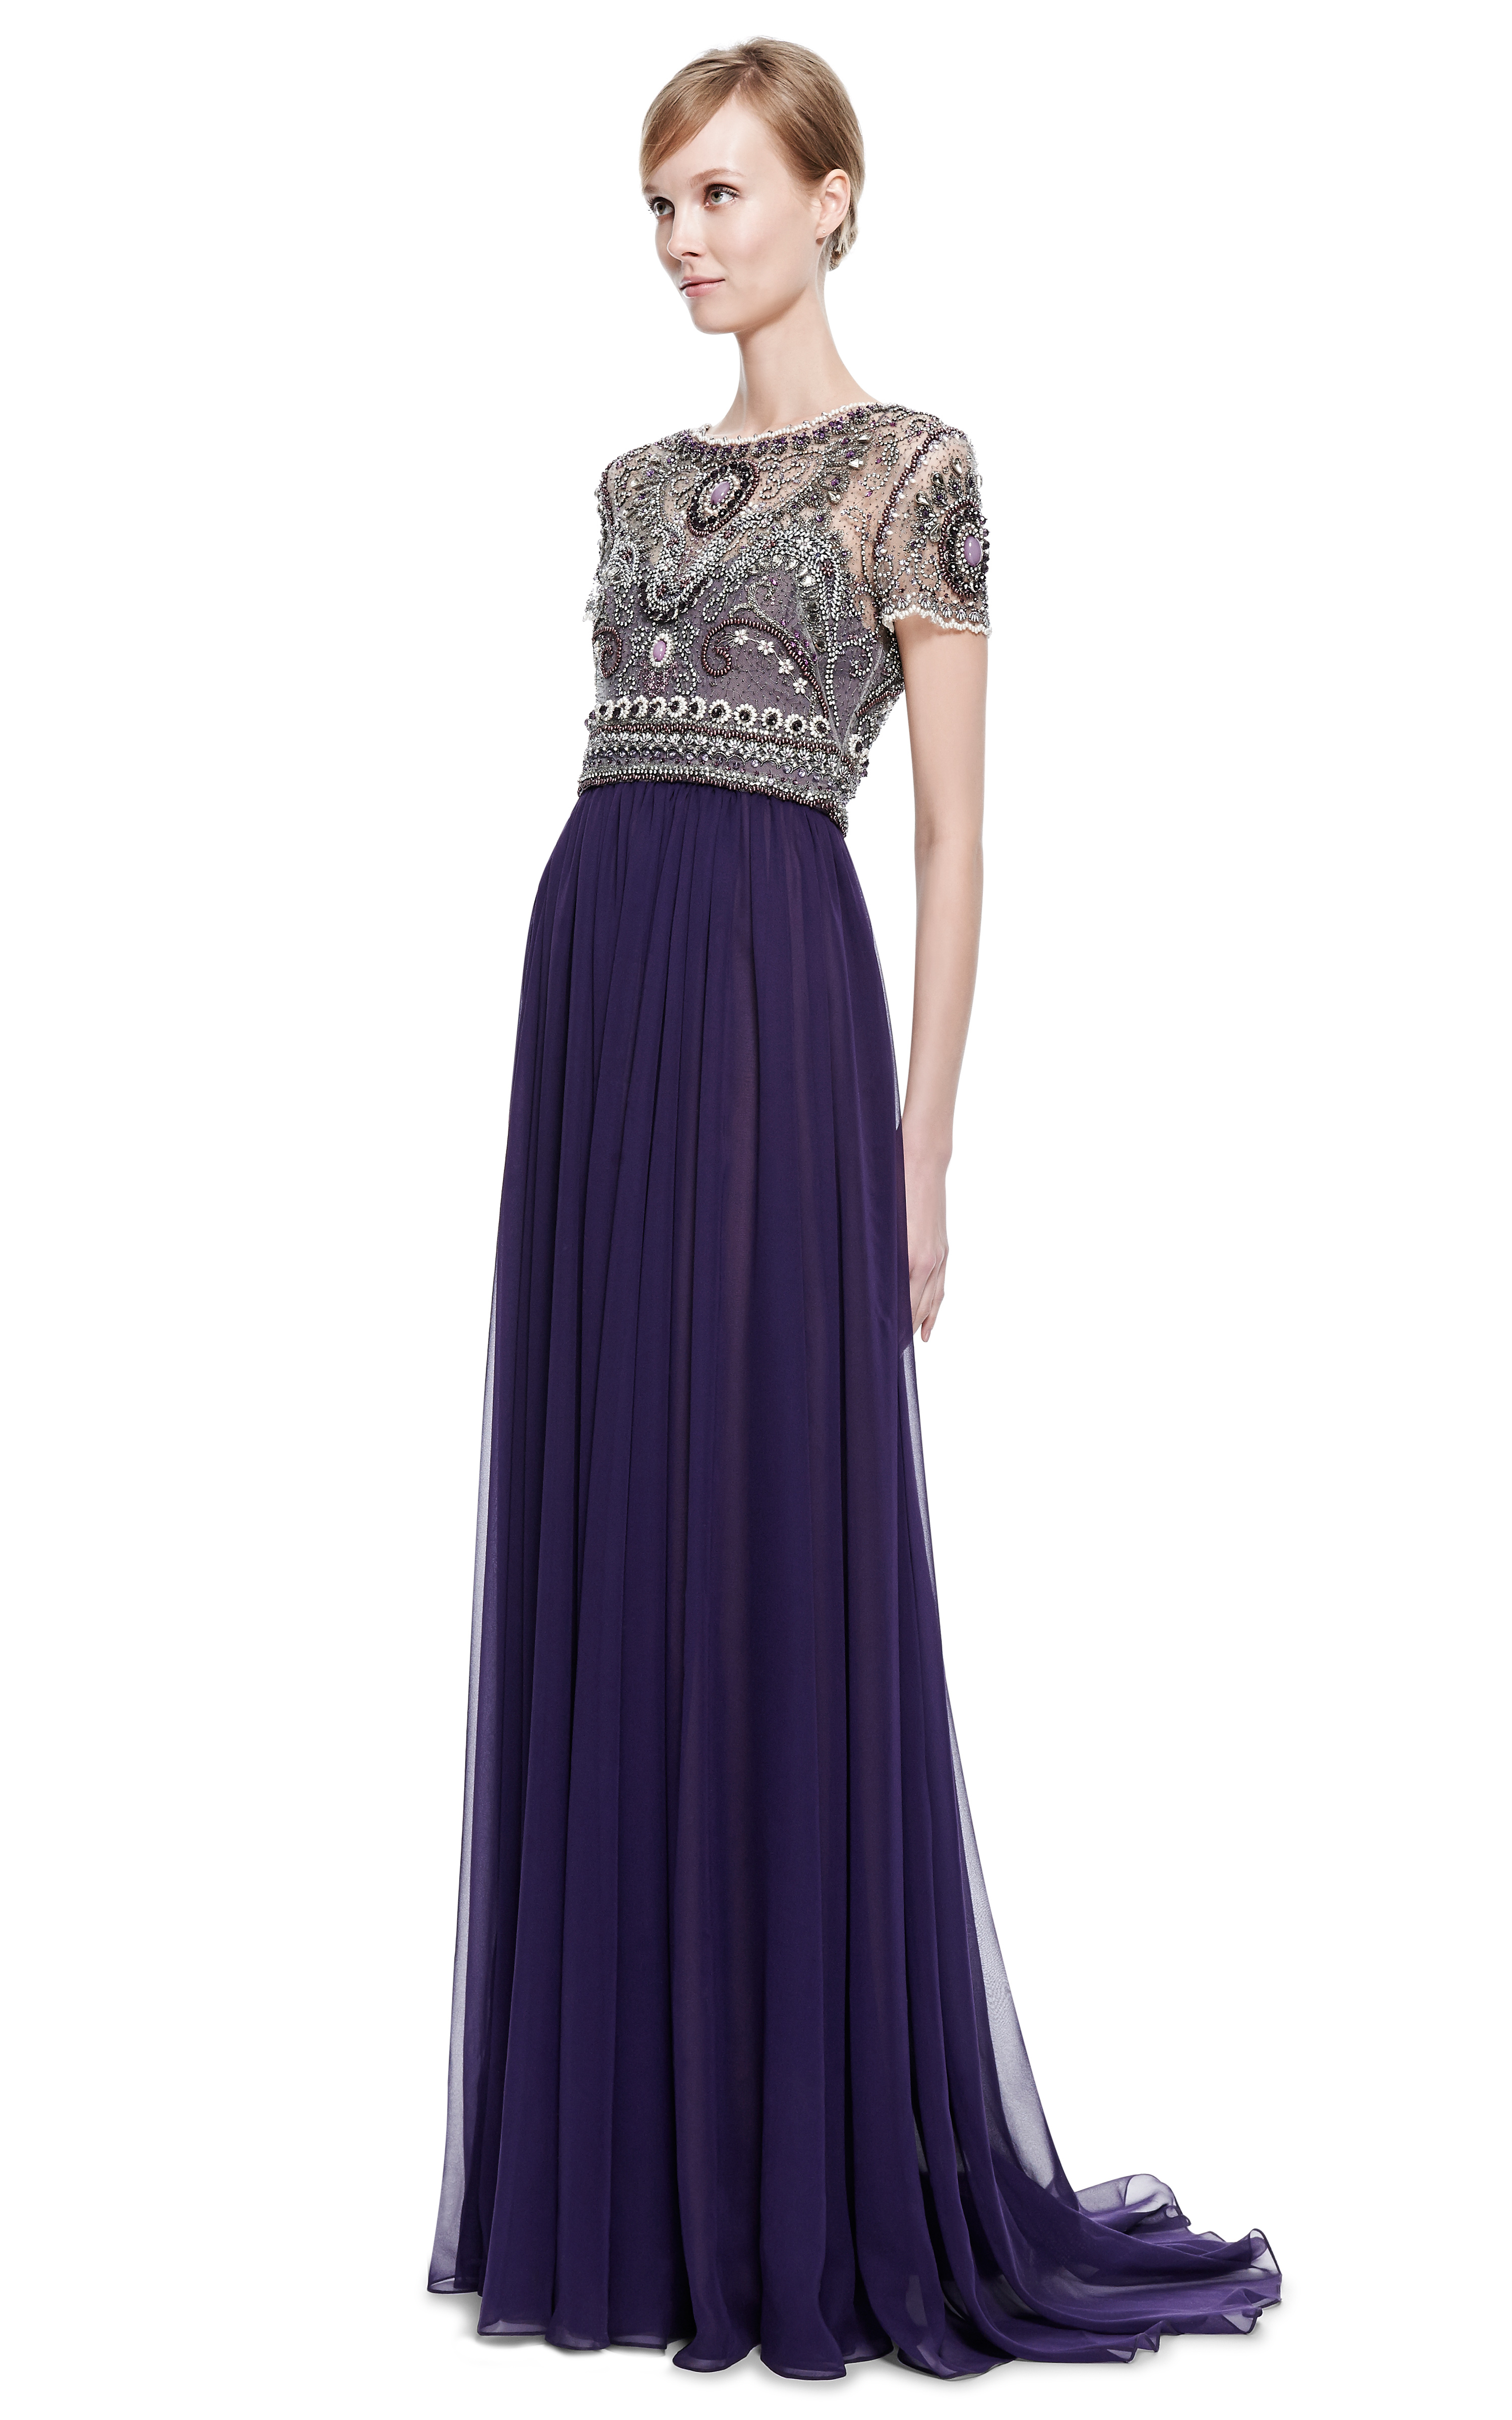 Lyst - Marchesa Short Sleeve Gown with Fully Embroidered Bodice in ...